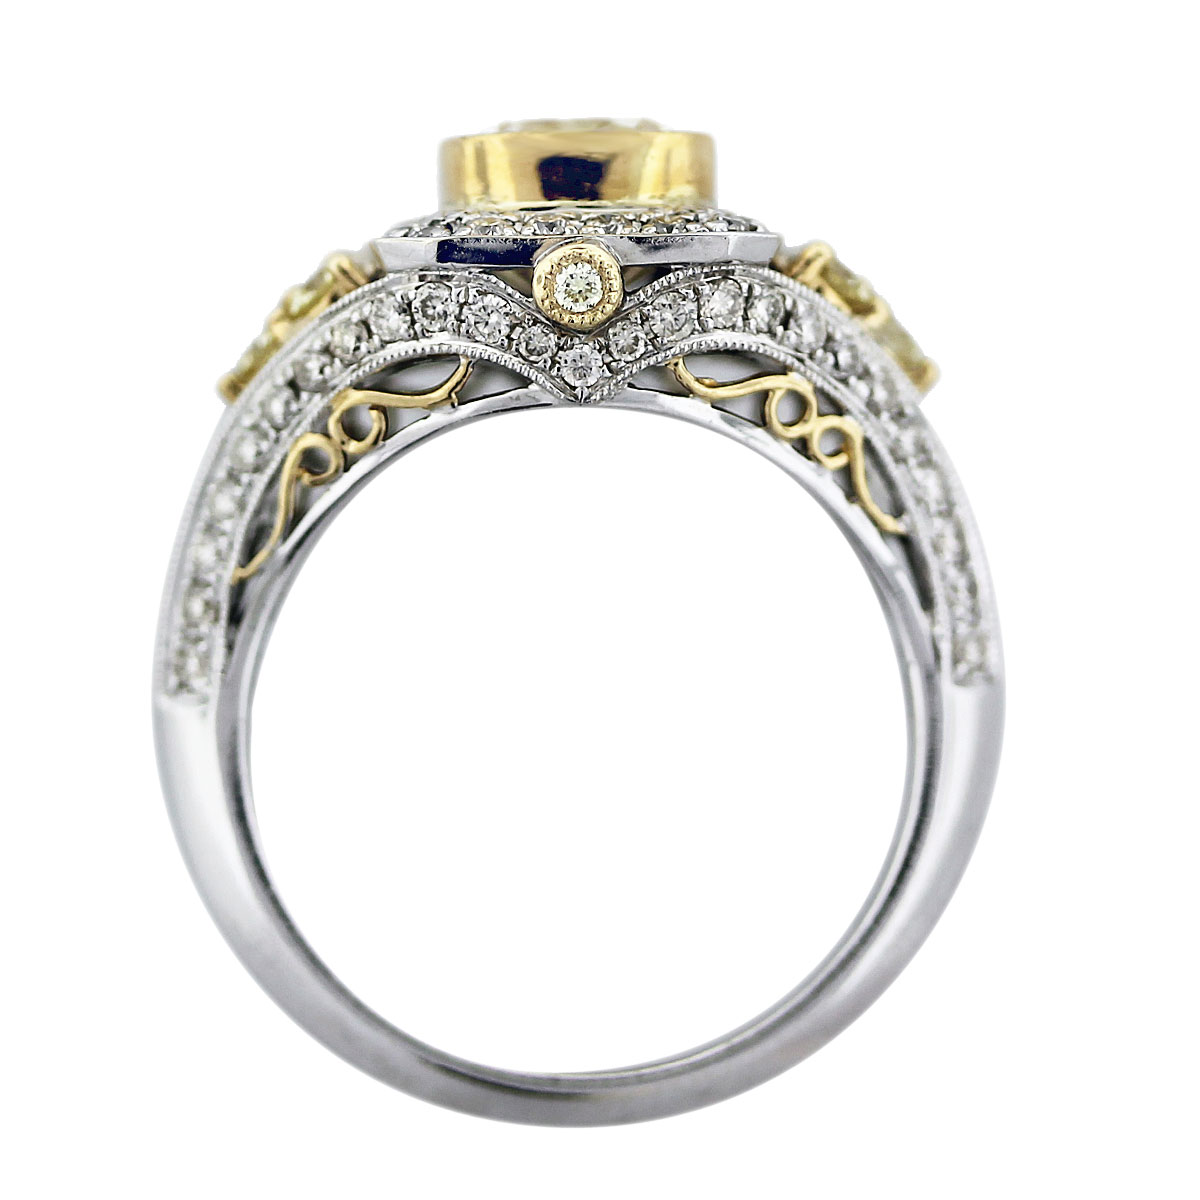 Cushion Cut Fancy Yellow Diamond Engagement Ring 18K Two Tone Gold